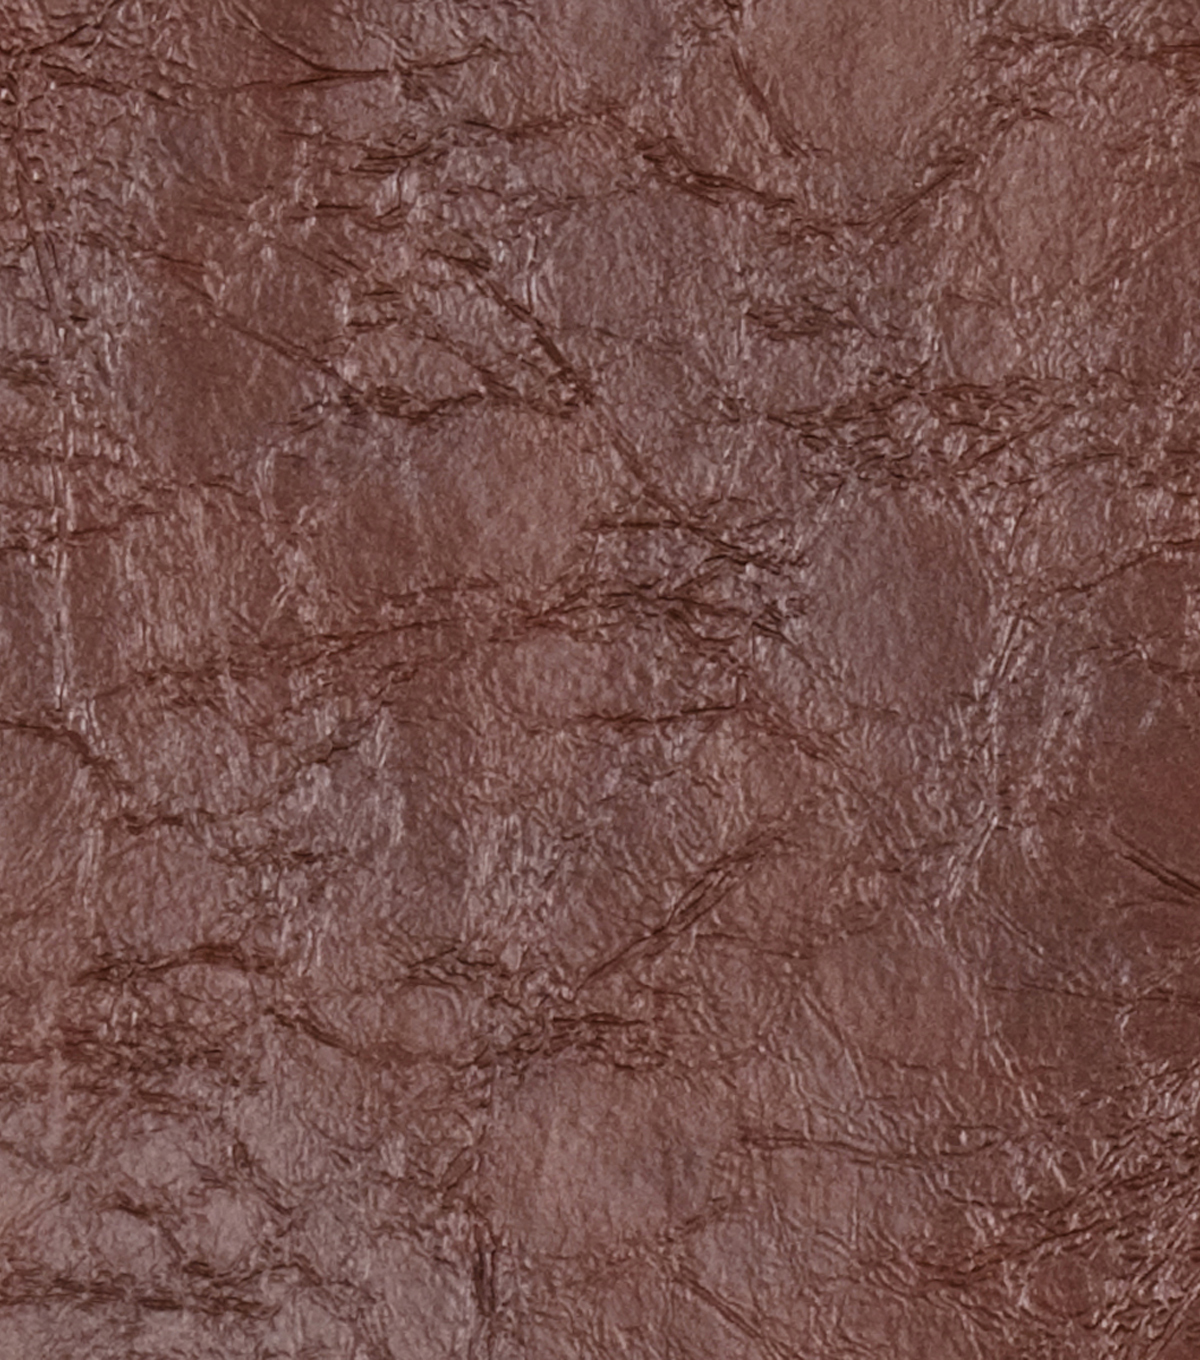 Home Decor 8\u0022x8\u0022 Fabric Swatch-Jaclyn Smith Optical-Cognac